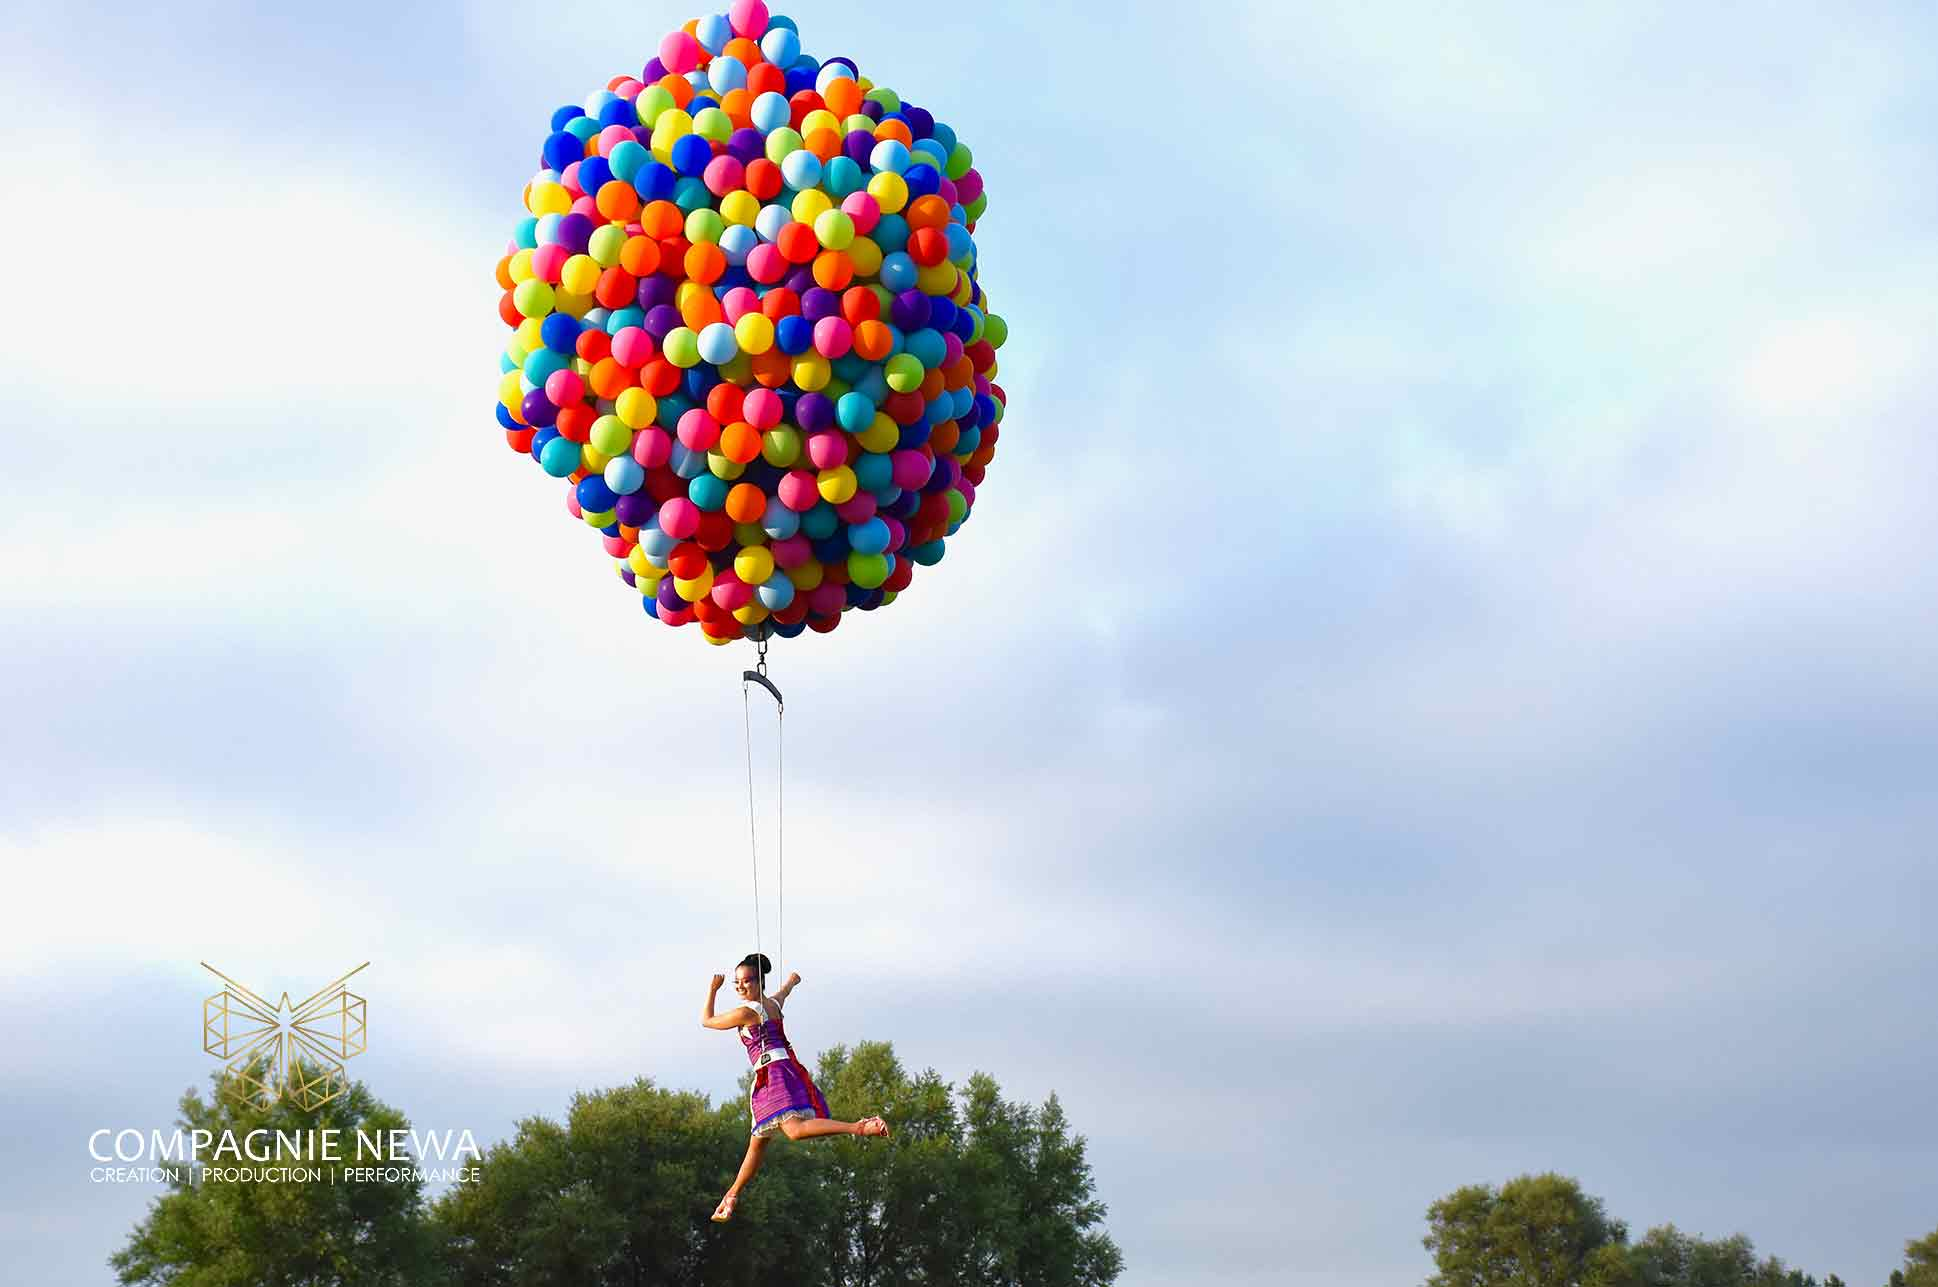 Compagnie_NEWA_knokke_festival_outdoor_performance_balloons_crane